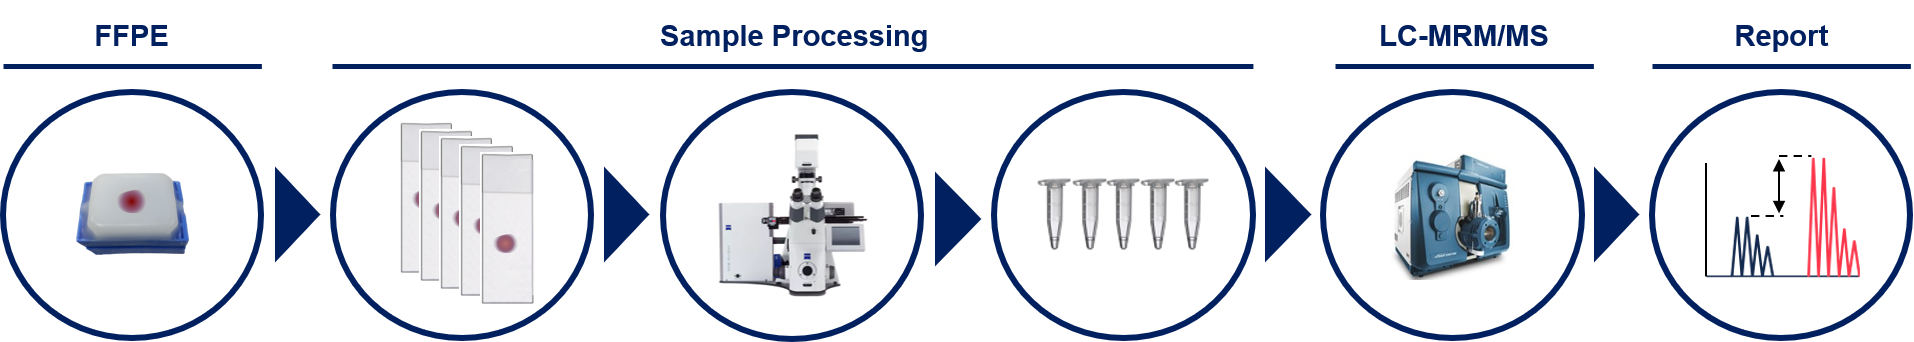 Image showing workflow from FFPE tissue, sample processing, LC-MS/MS, and finally data report